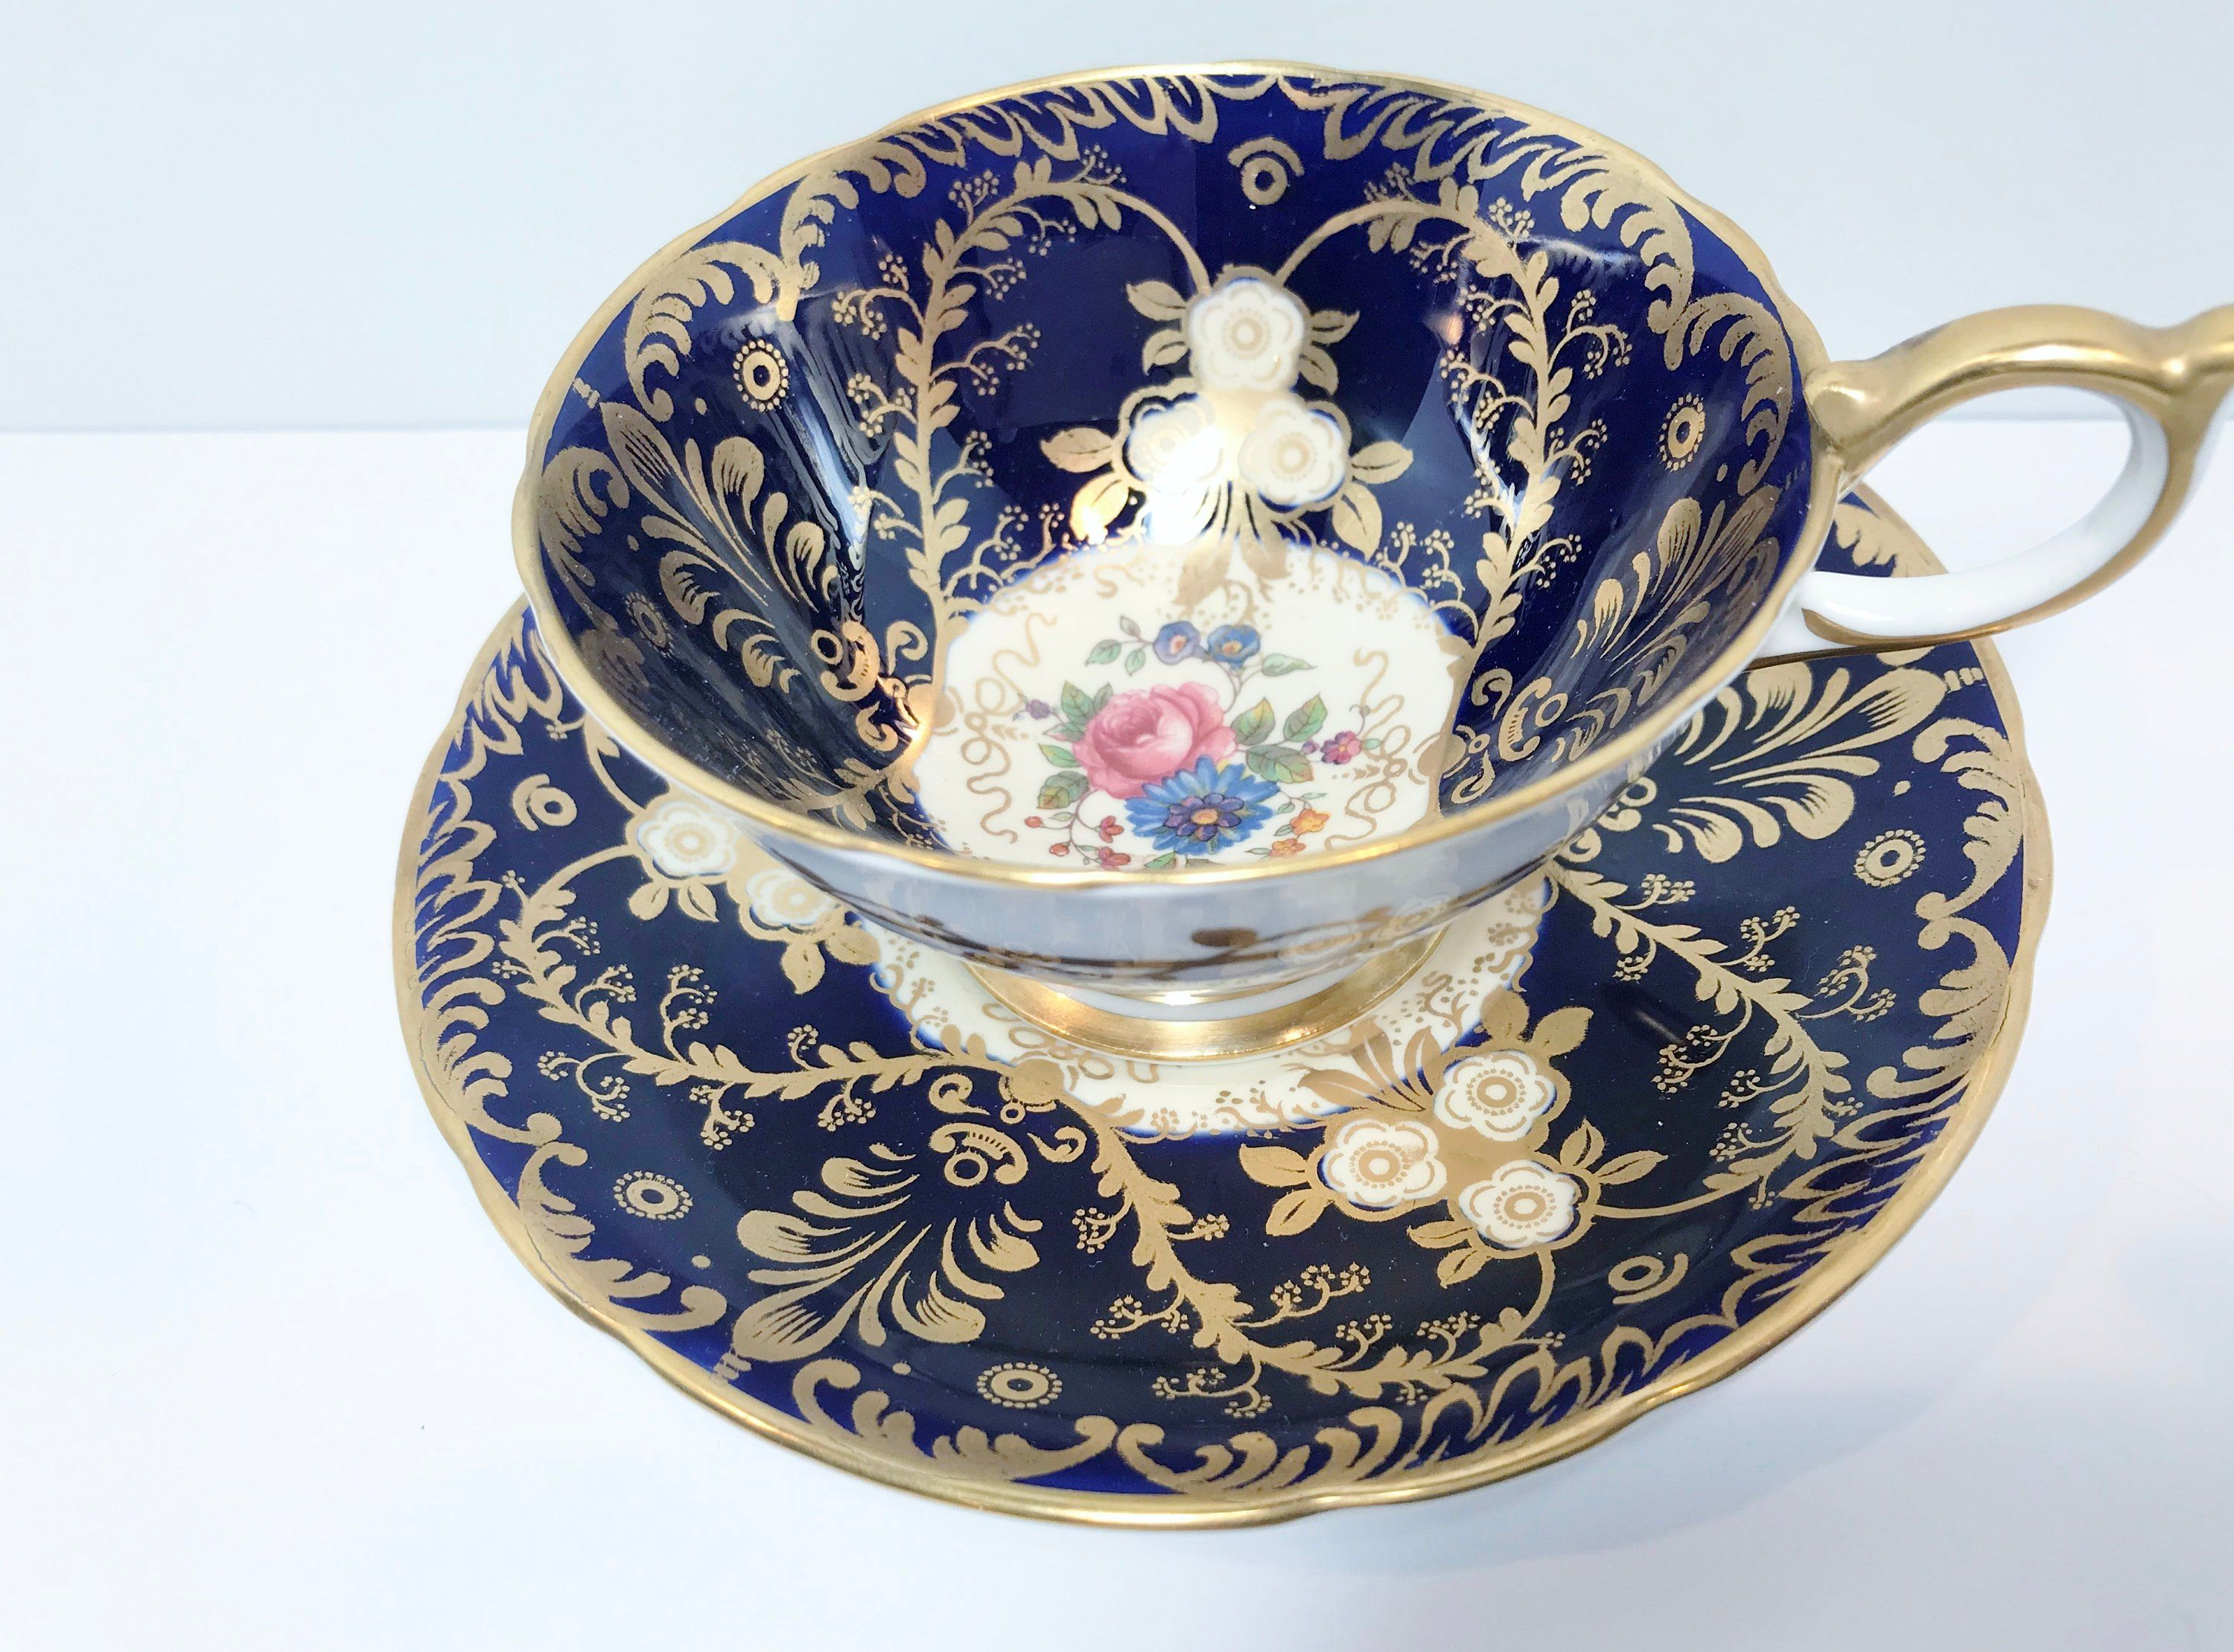 Royalty by Aynsley Tea Cup and Saucer,  Antique Tea Cups Vintage, Floral Tea Cups, Aynsley Cups, Aynsley Blue Royalty, Hand Painted Cup #teacups